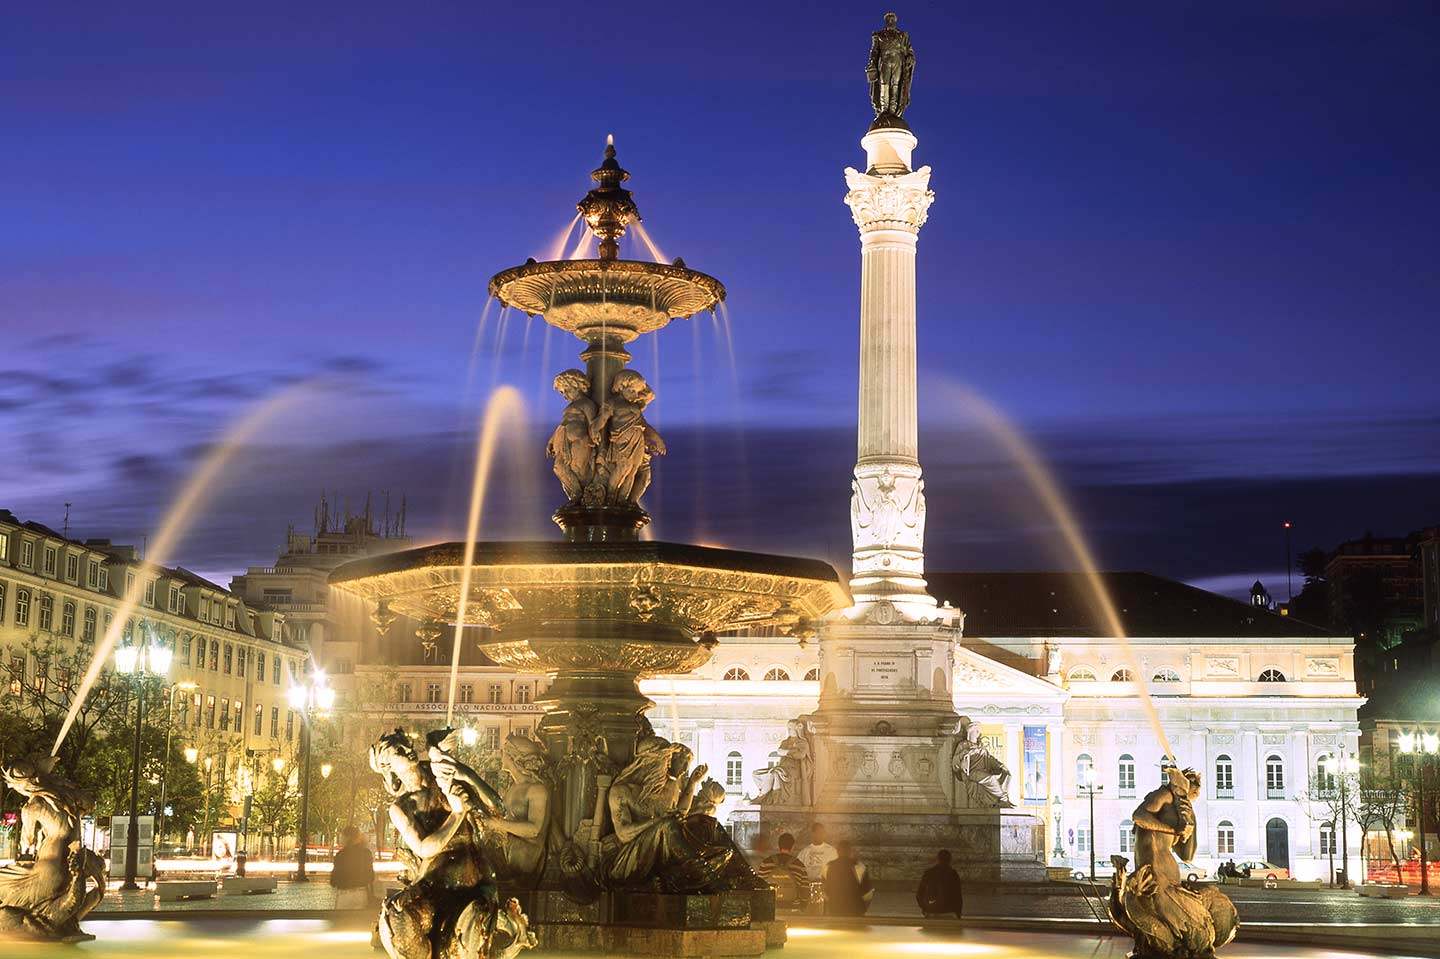 Image of Rossio Square in Lisbon at night